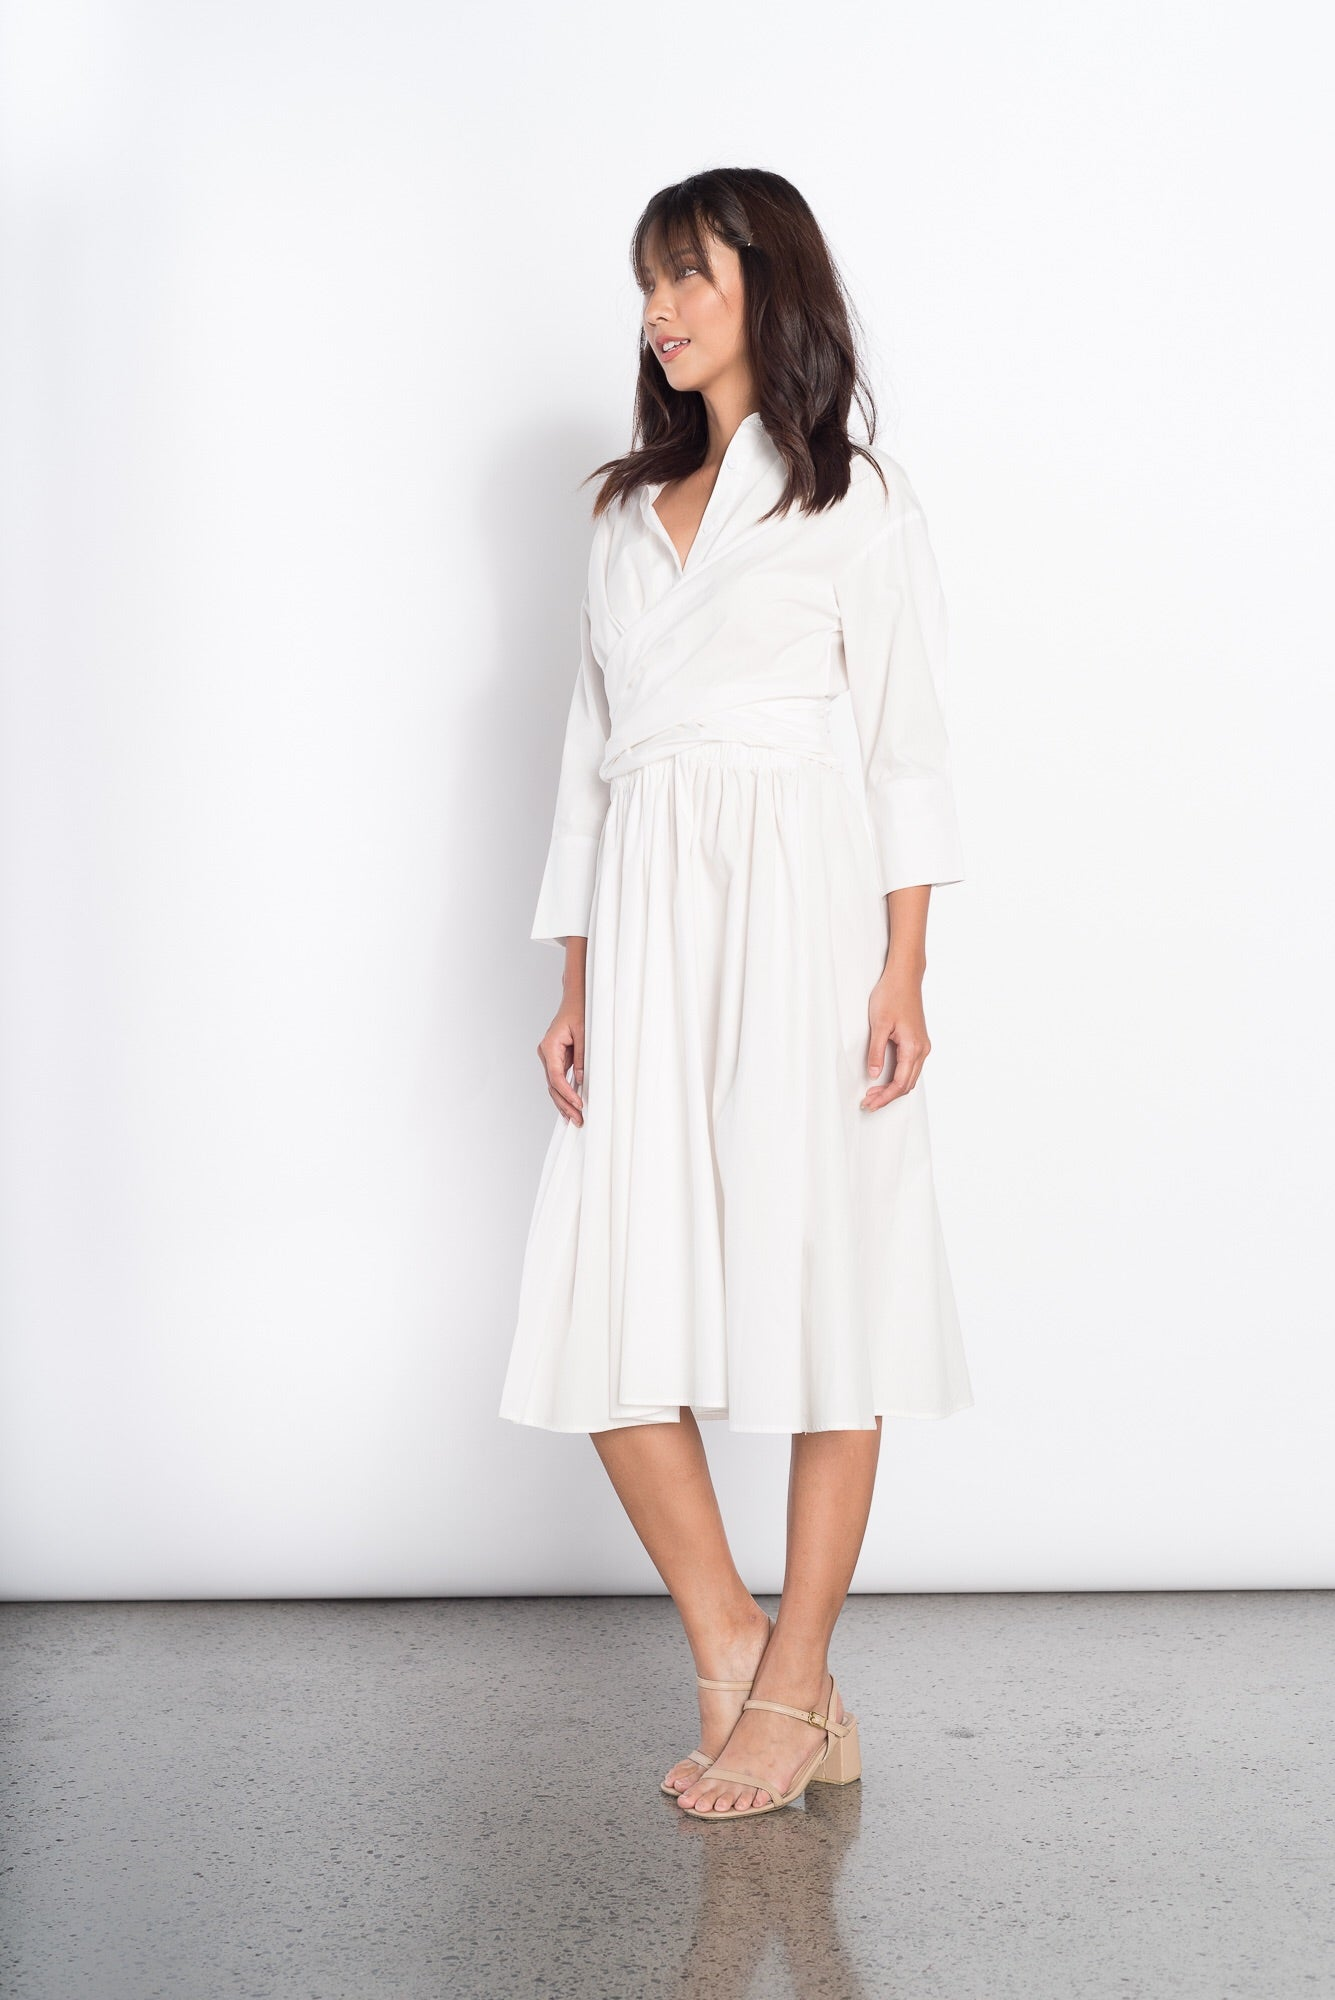 Ginevra Long Sleeve Dress in White